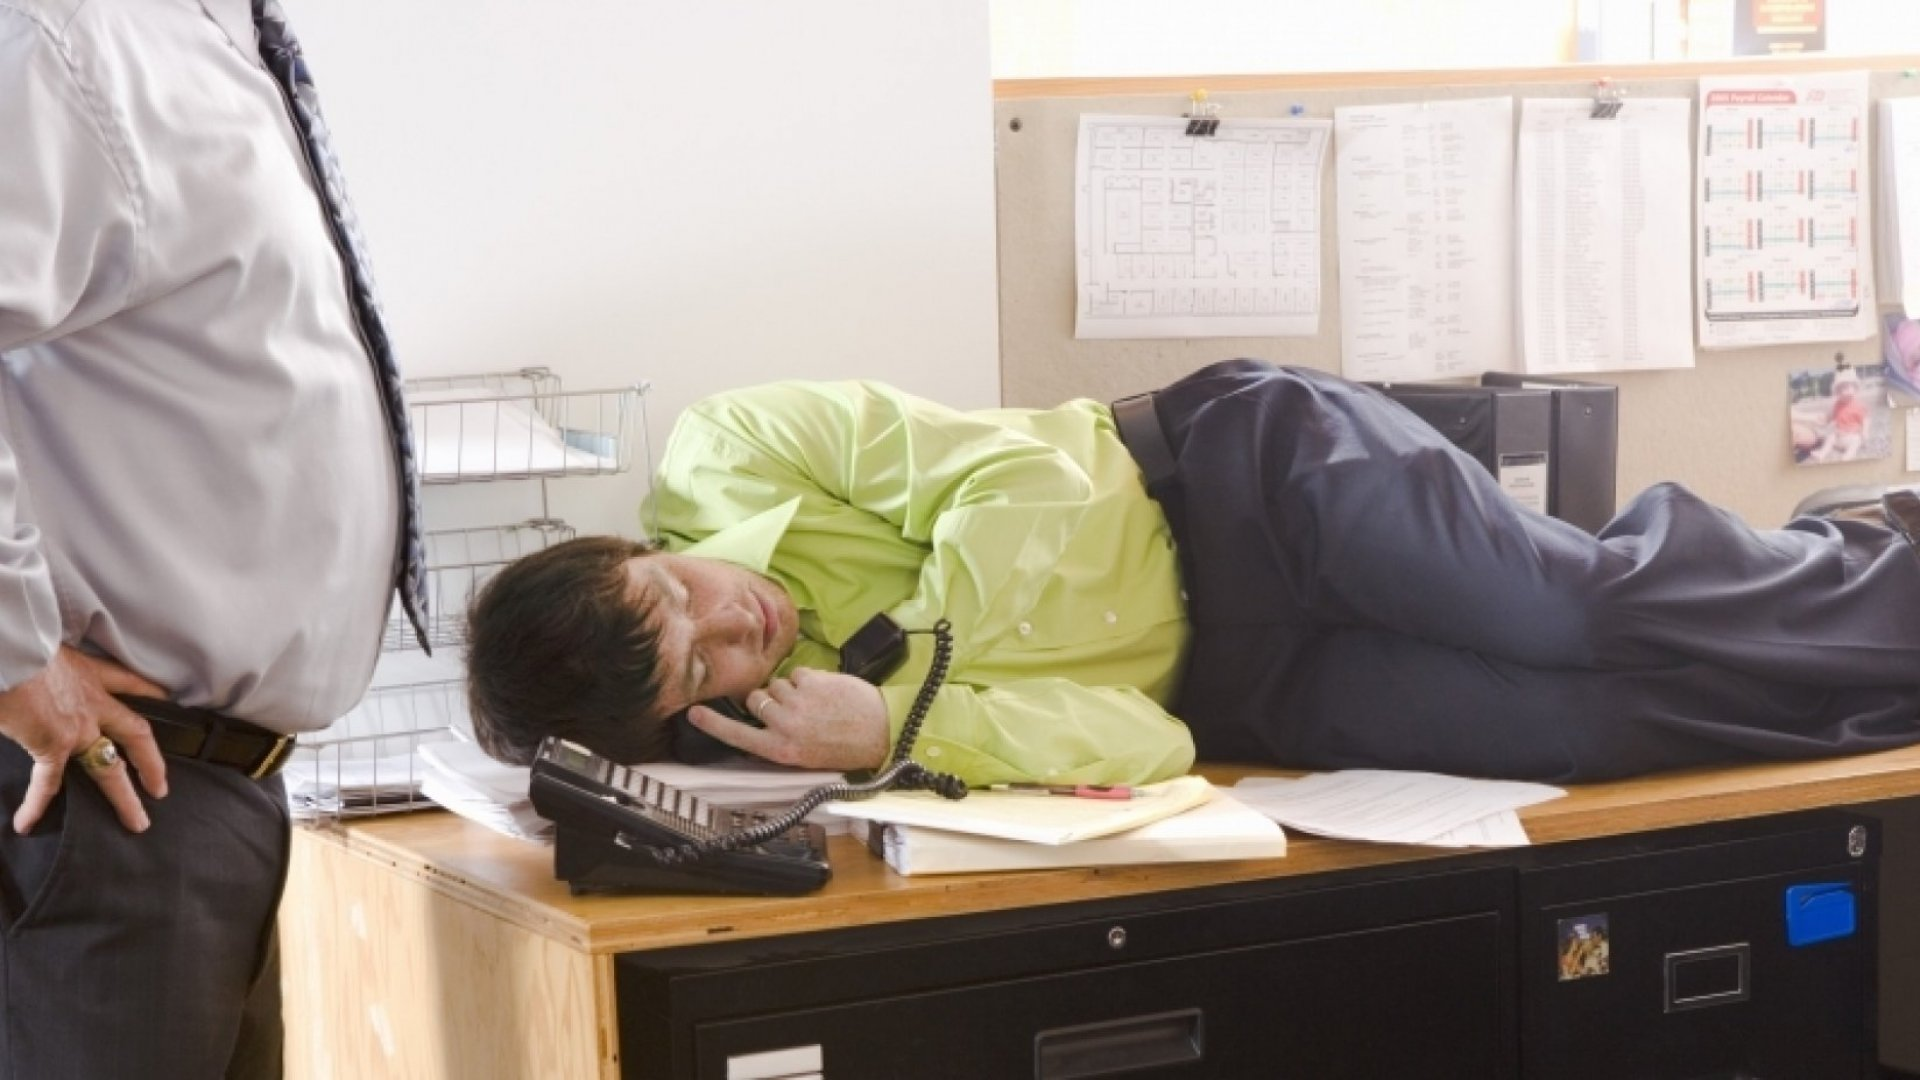 How to Get Employees to Take Time Off